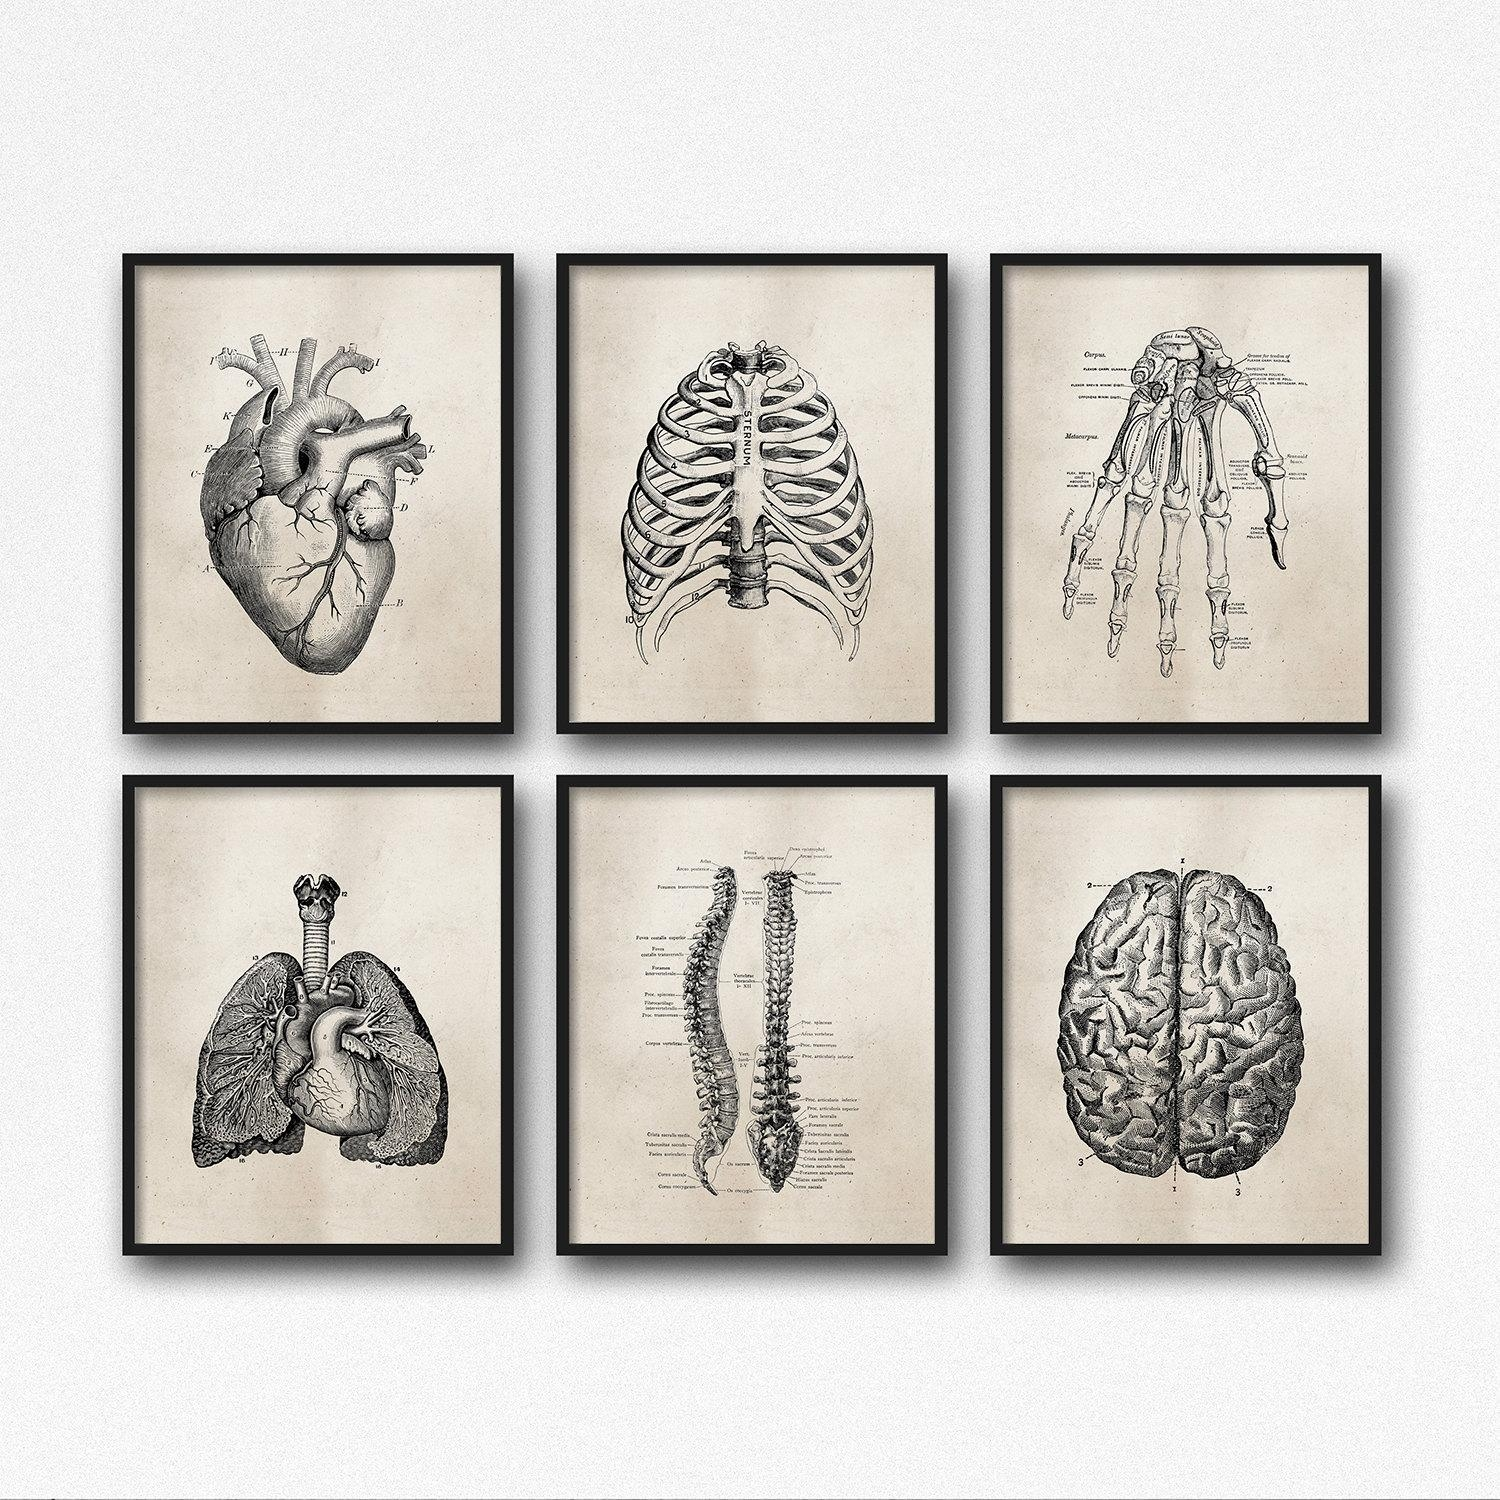 Anatomy Art Prints Office Art Medical Student Graduation With Medical Wall Art (Image 3 of 20)